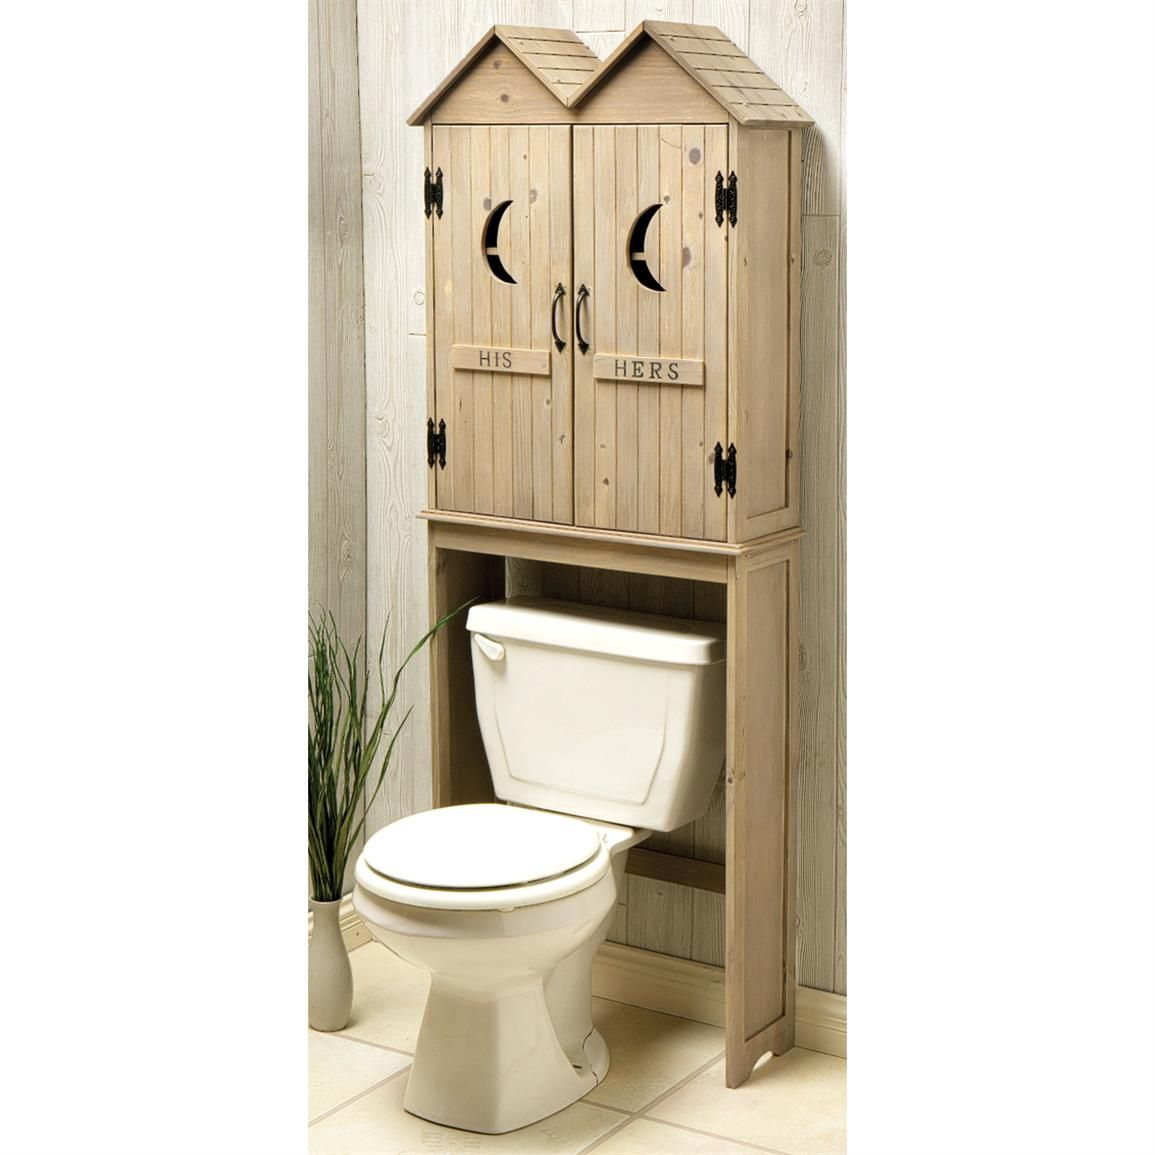 Space Saver Cabinets Kitchen Bathroom Storage With A Helping Of Humor Outhouse Space